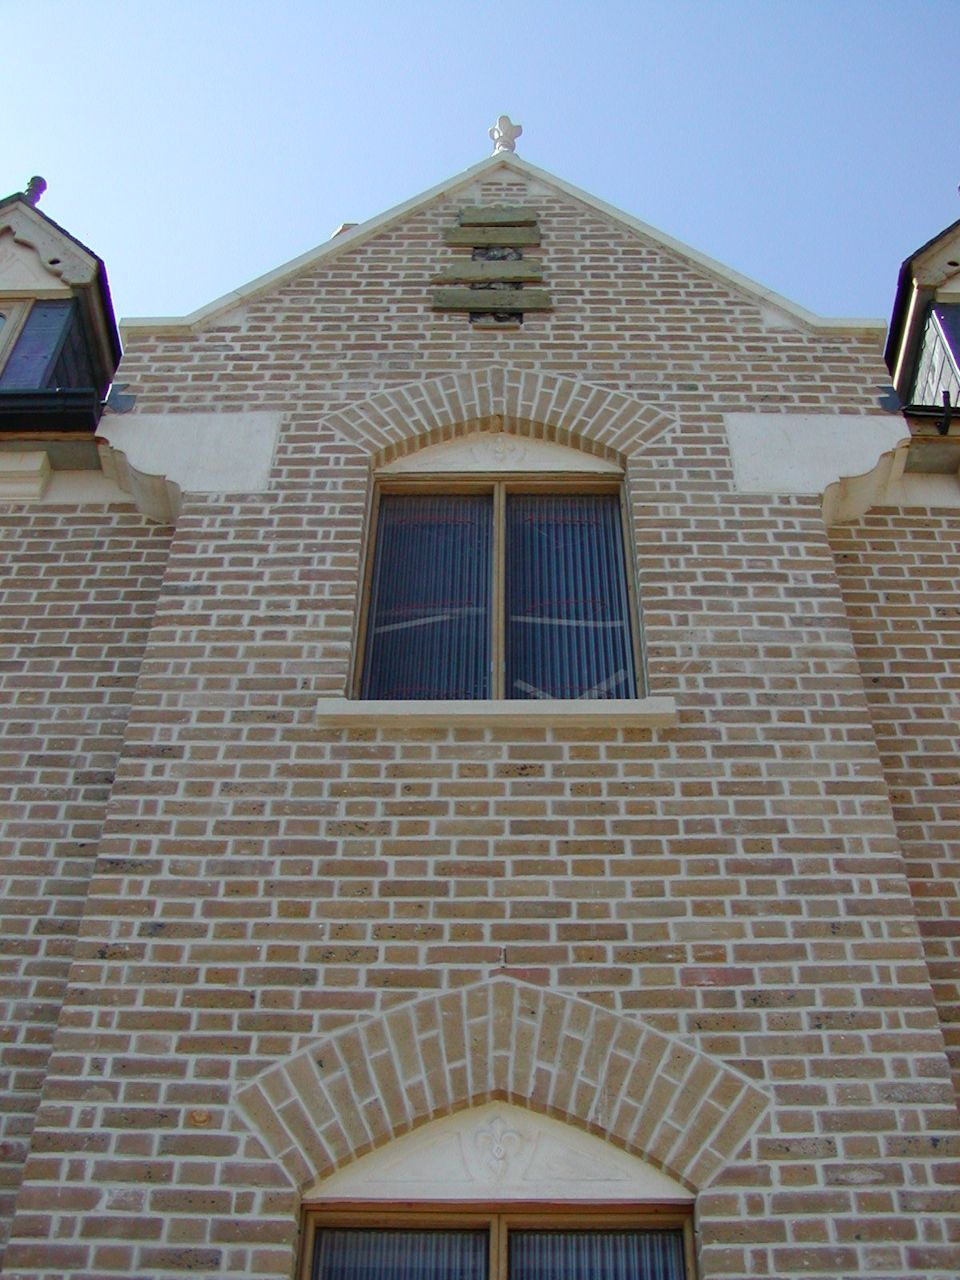 Many examples of additional brickwork features can be found on this